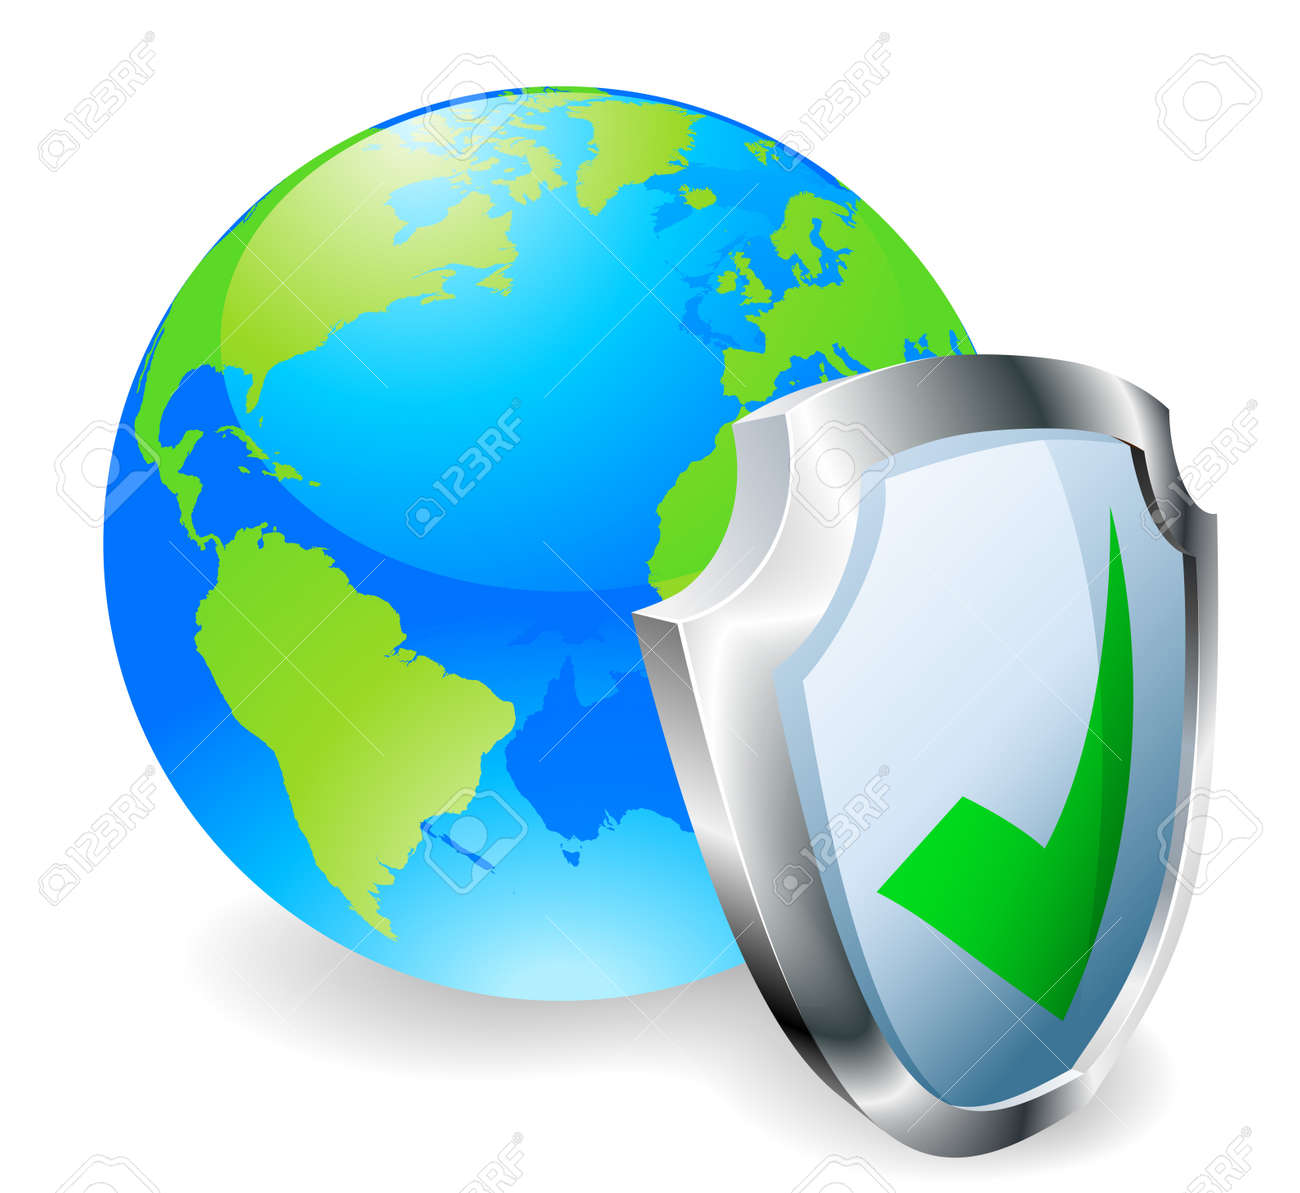 Globe with shield icon with green tick. Concept for internet security or antivirus or firewall etc. Stock Vector - 10804342